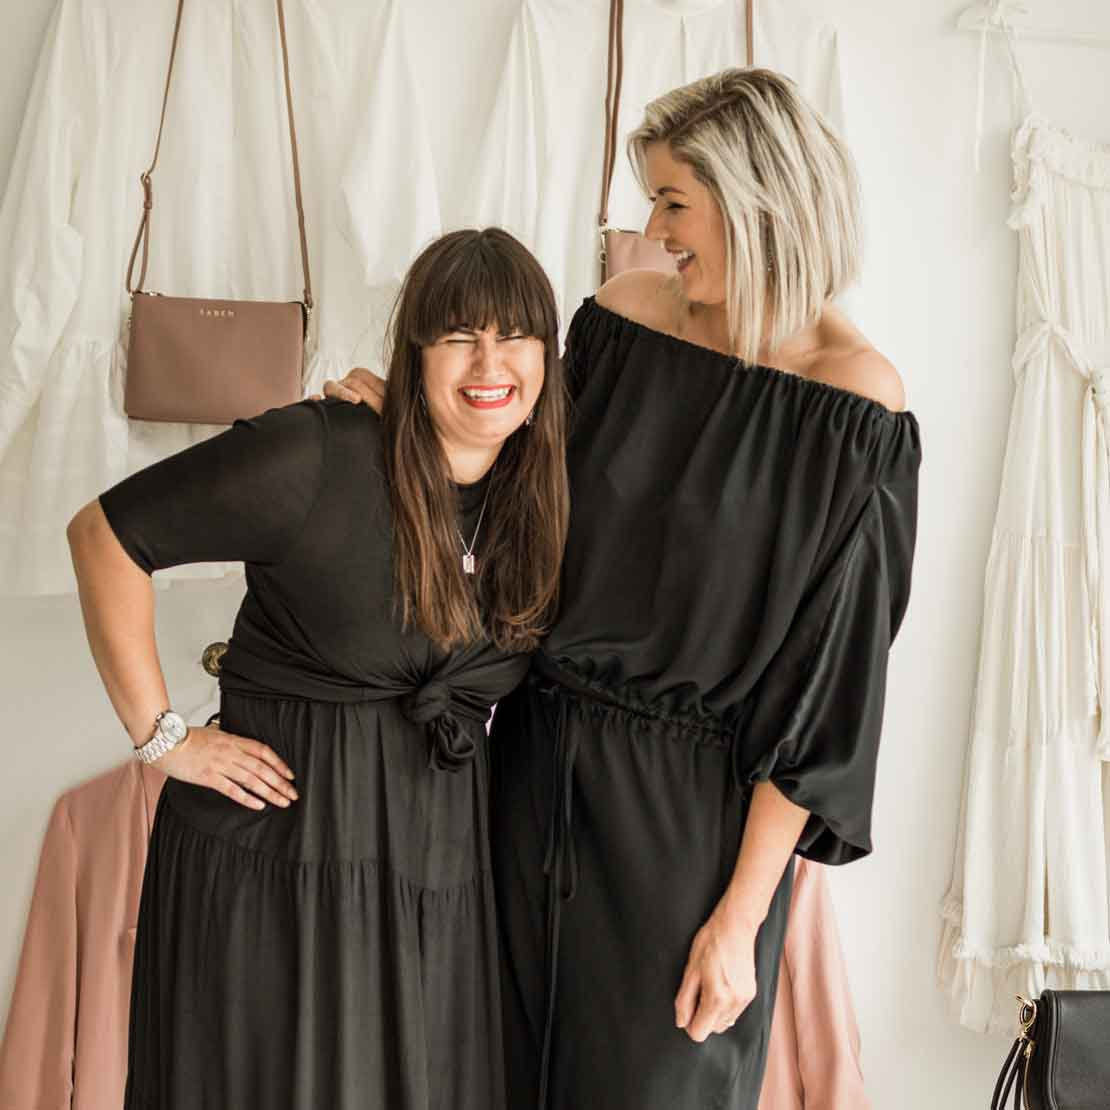 BAZAAR THE EMPIRE | Q&A with Nardine and Hayley